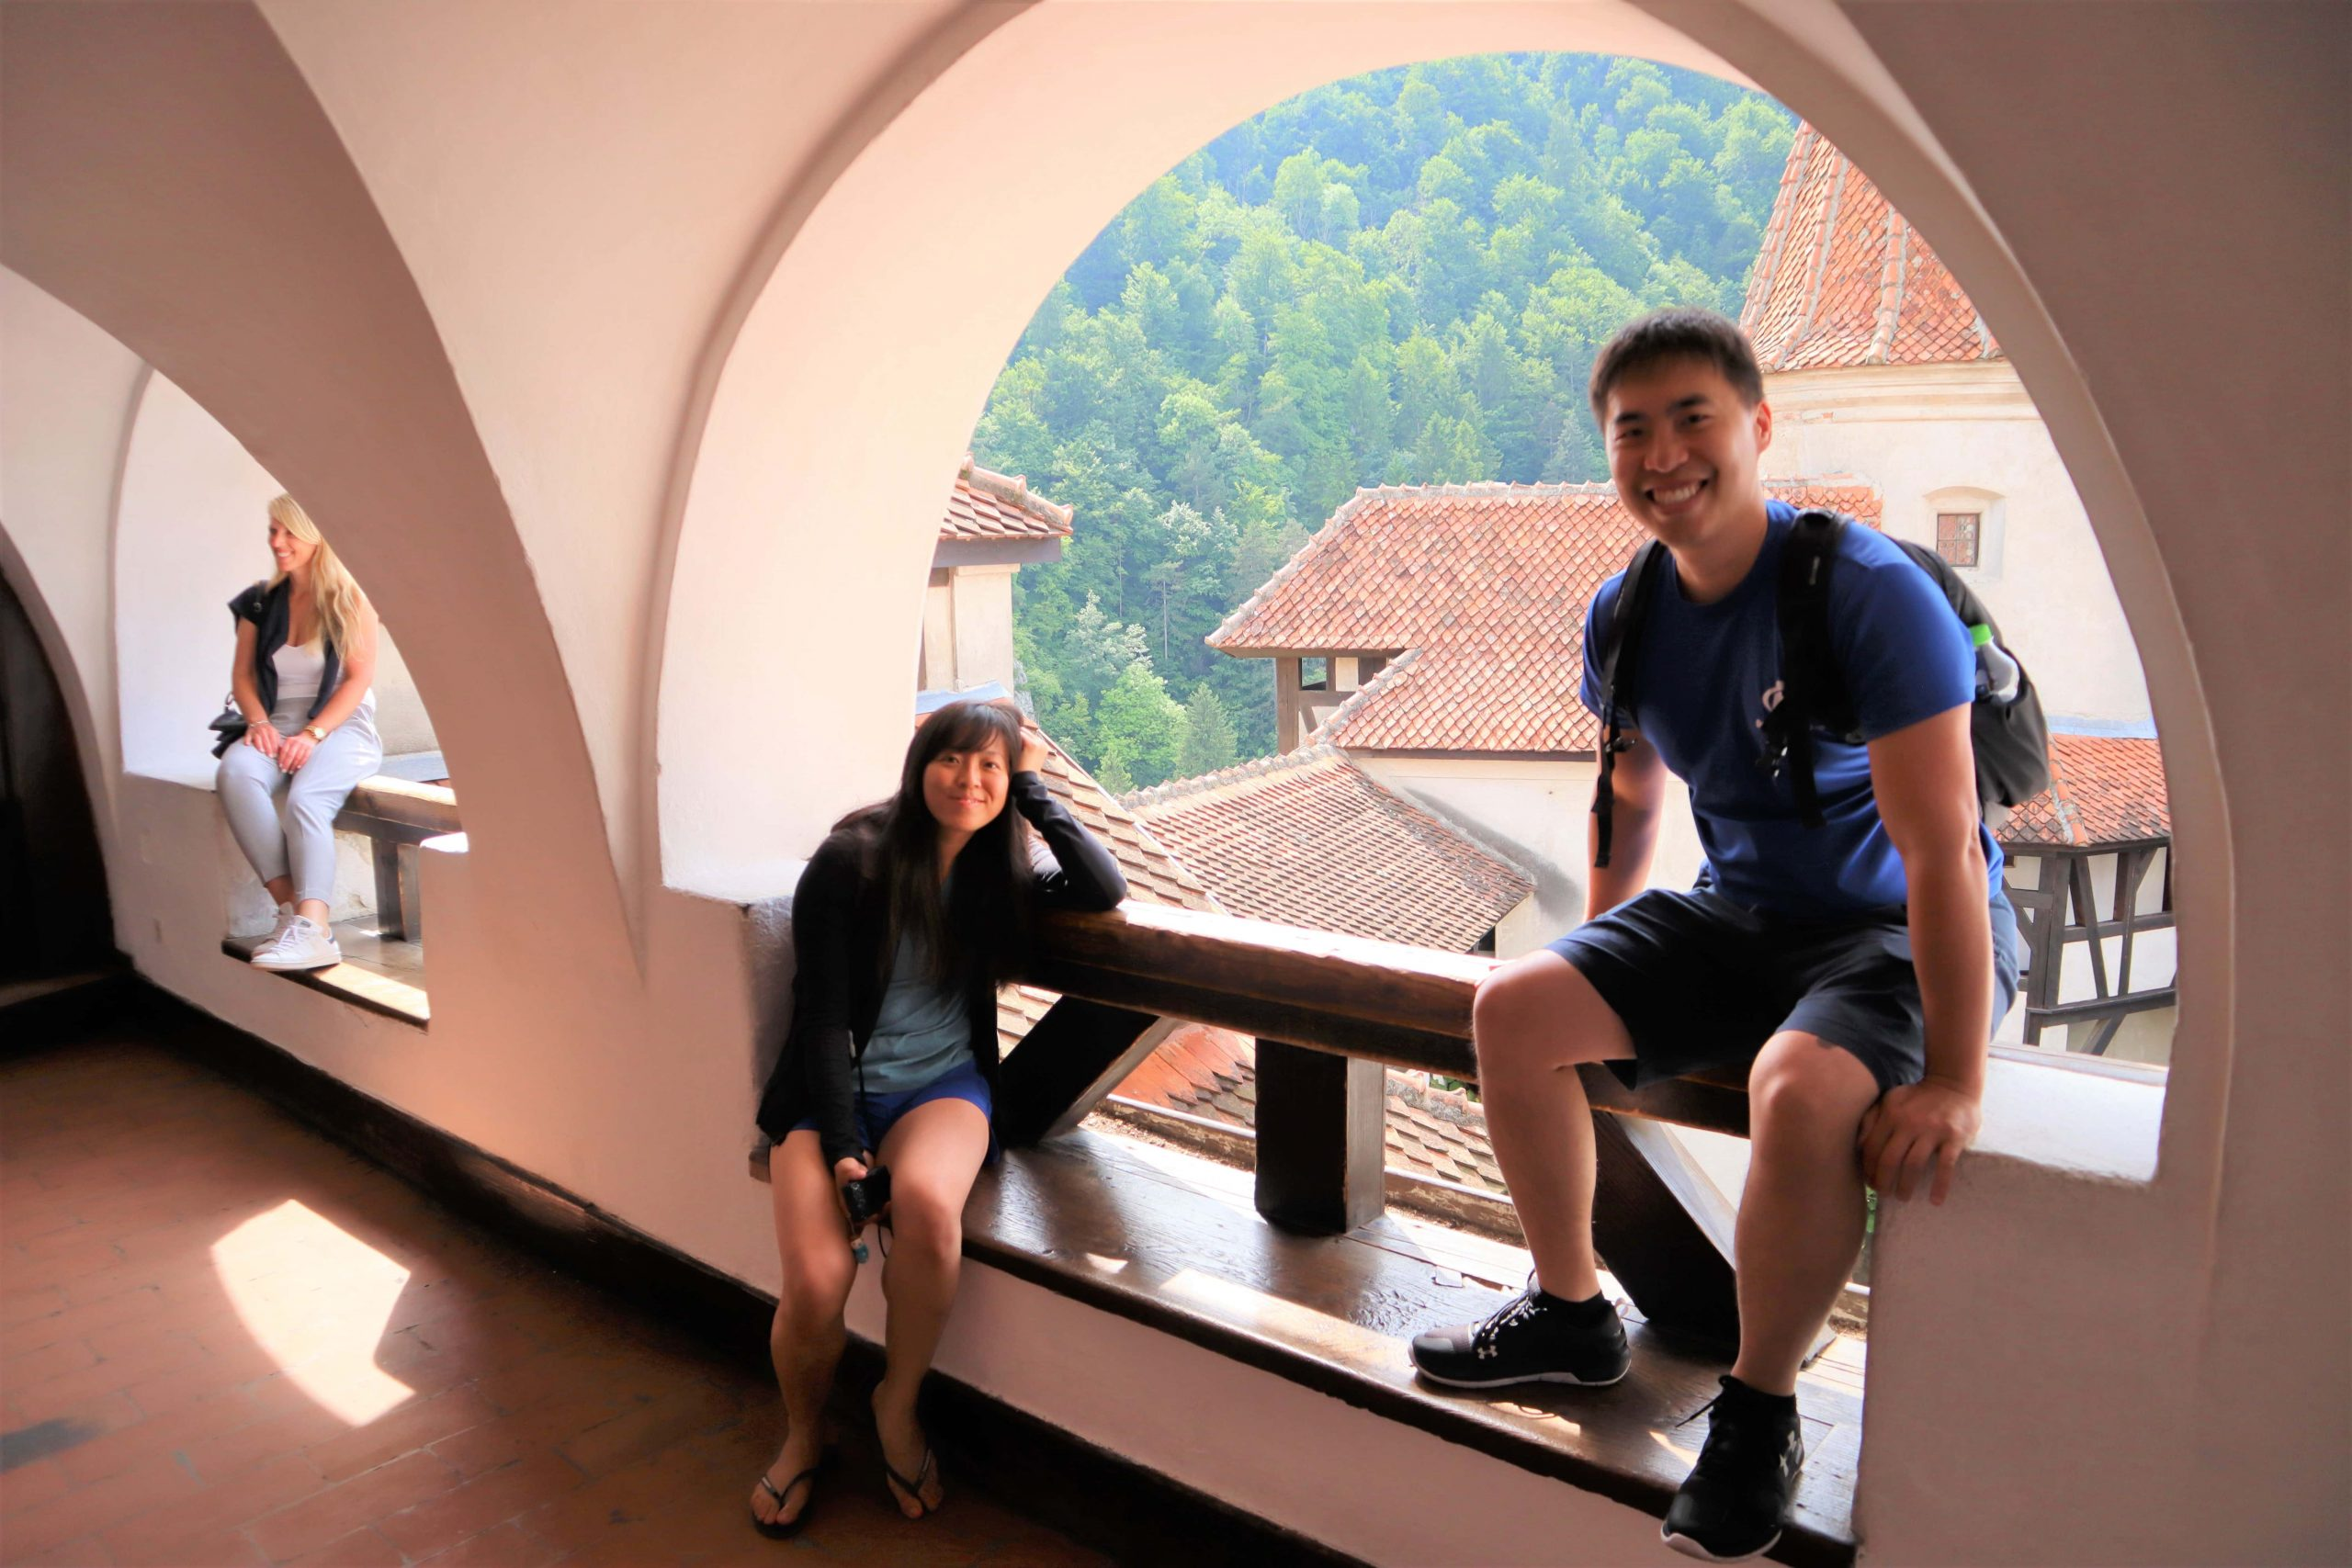 Romania, Romania – Country #84 In My Mission to Visit All the Countries in the World